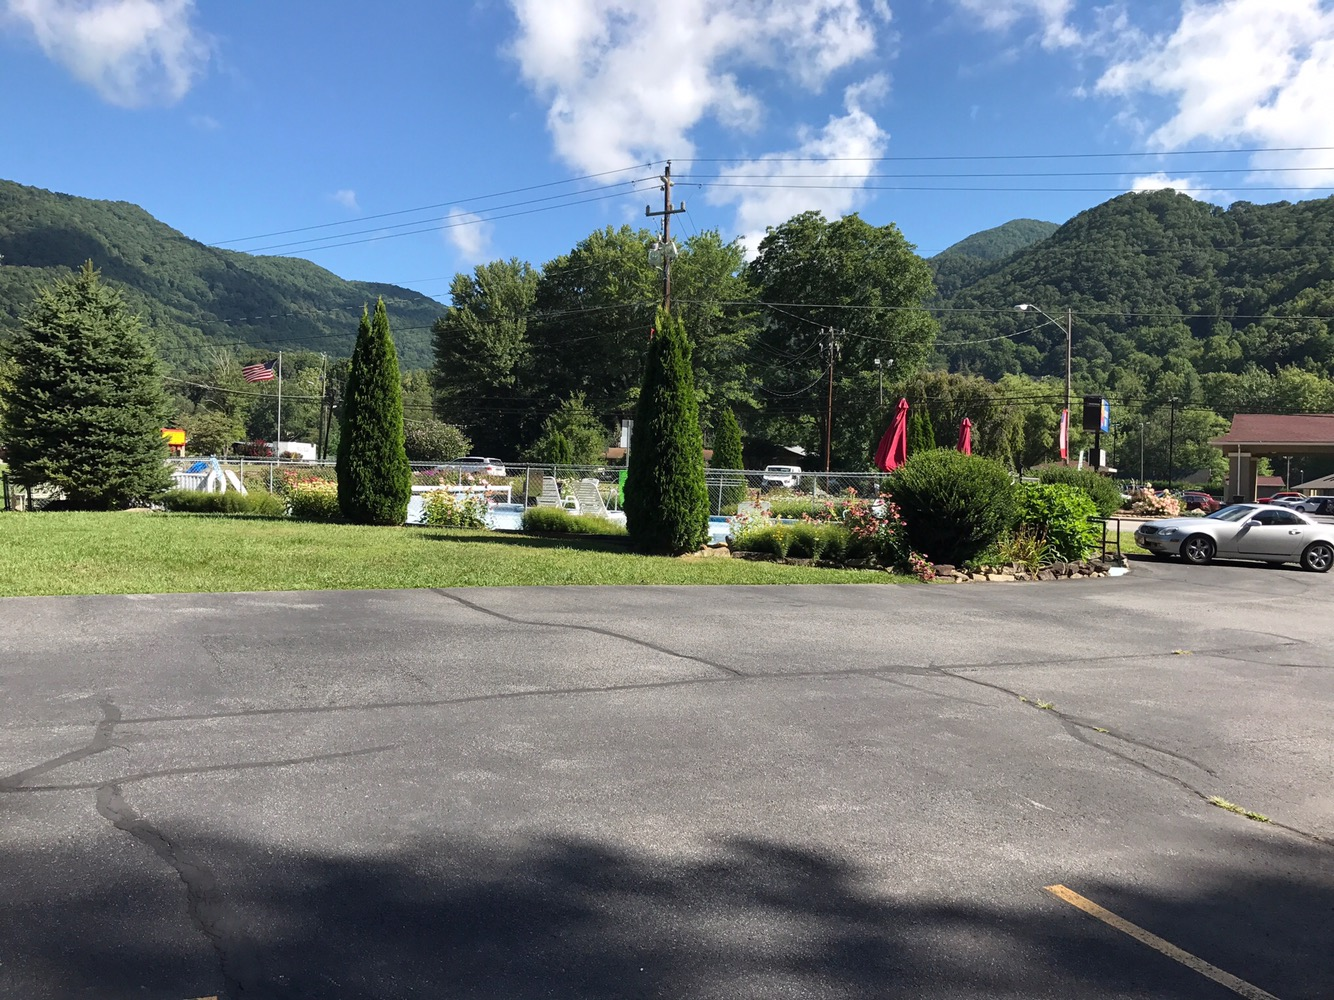 View from the motel.